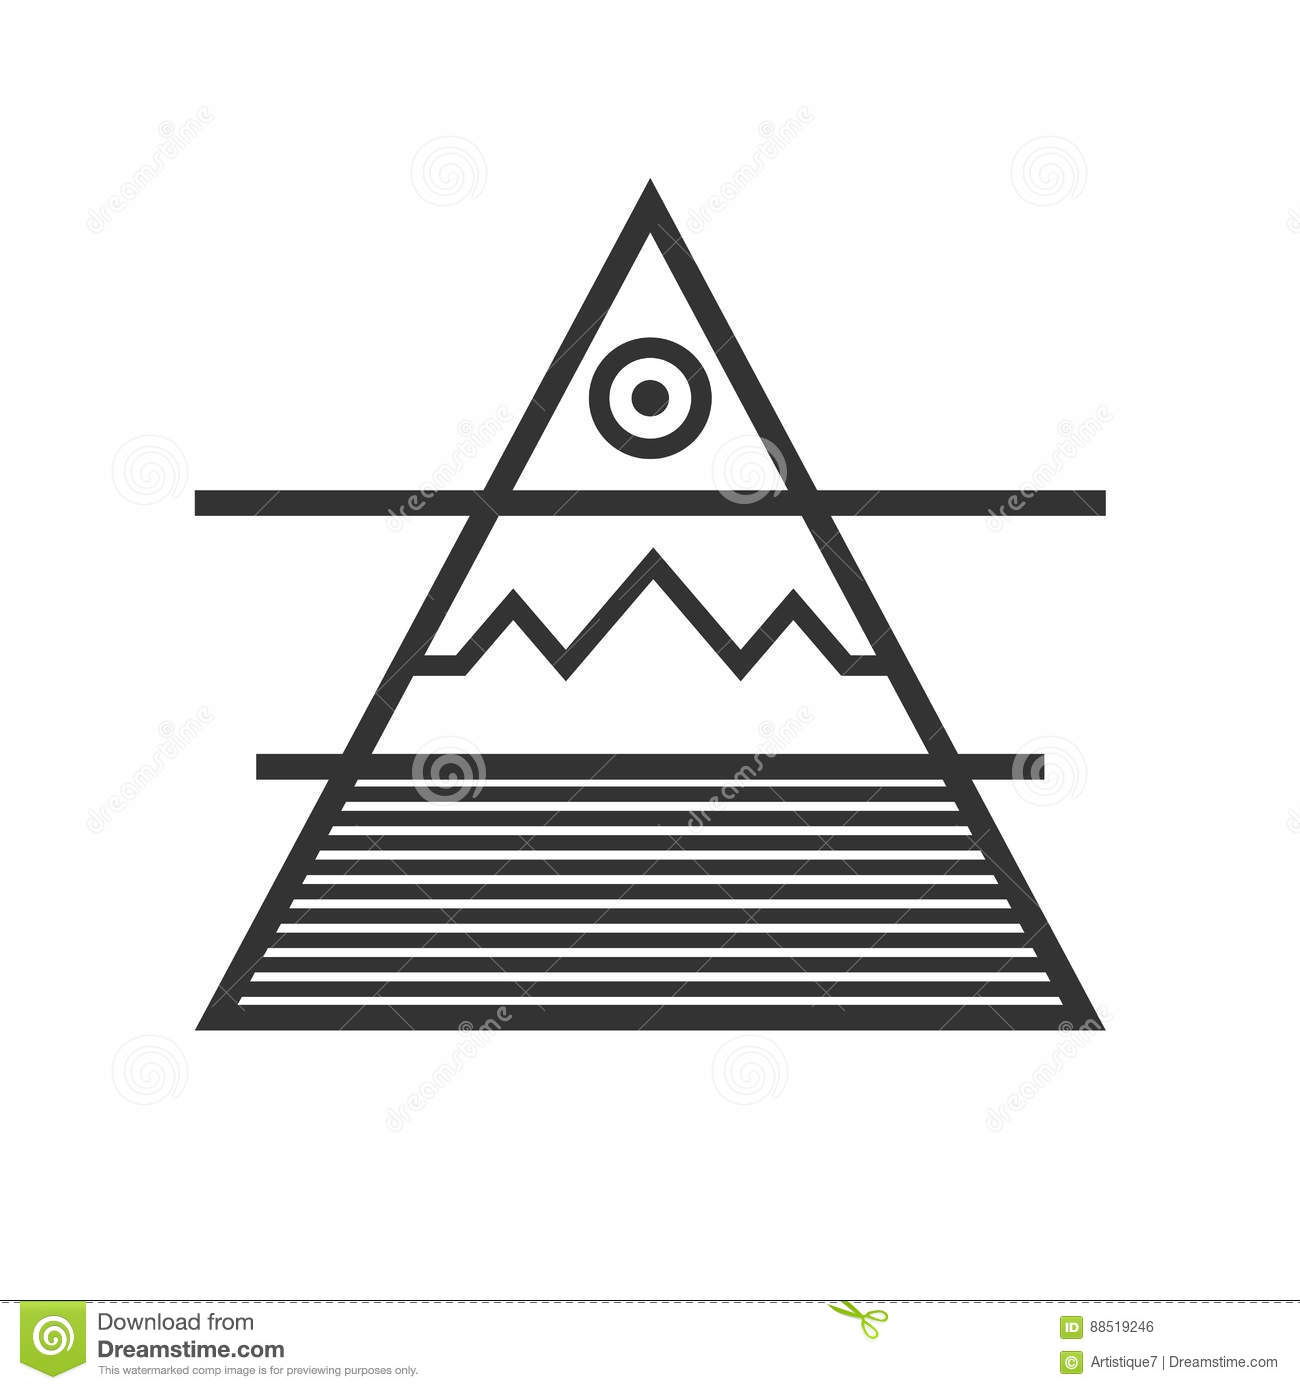 Triangle divided into three elements water ground air sun stock triangle divided into three elements water ground air sun biocorpaavc